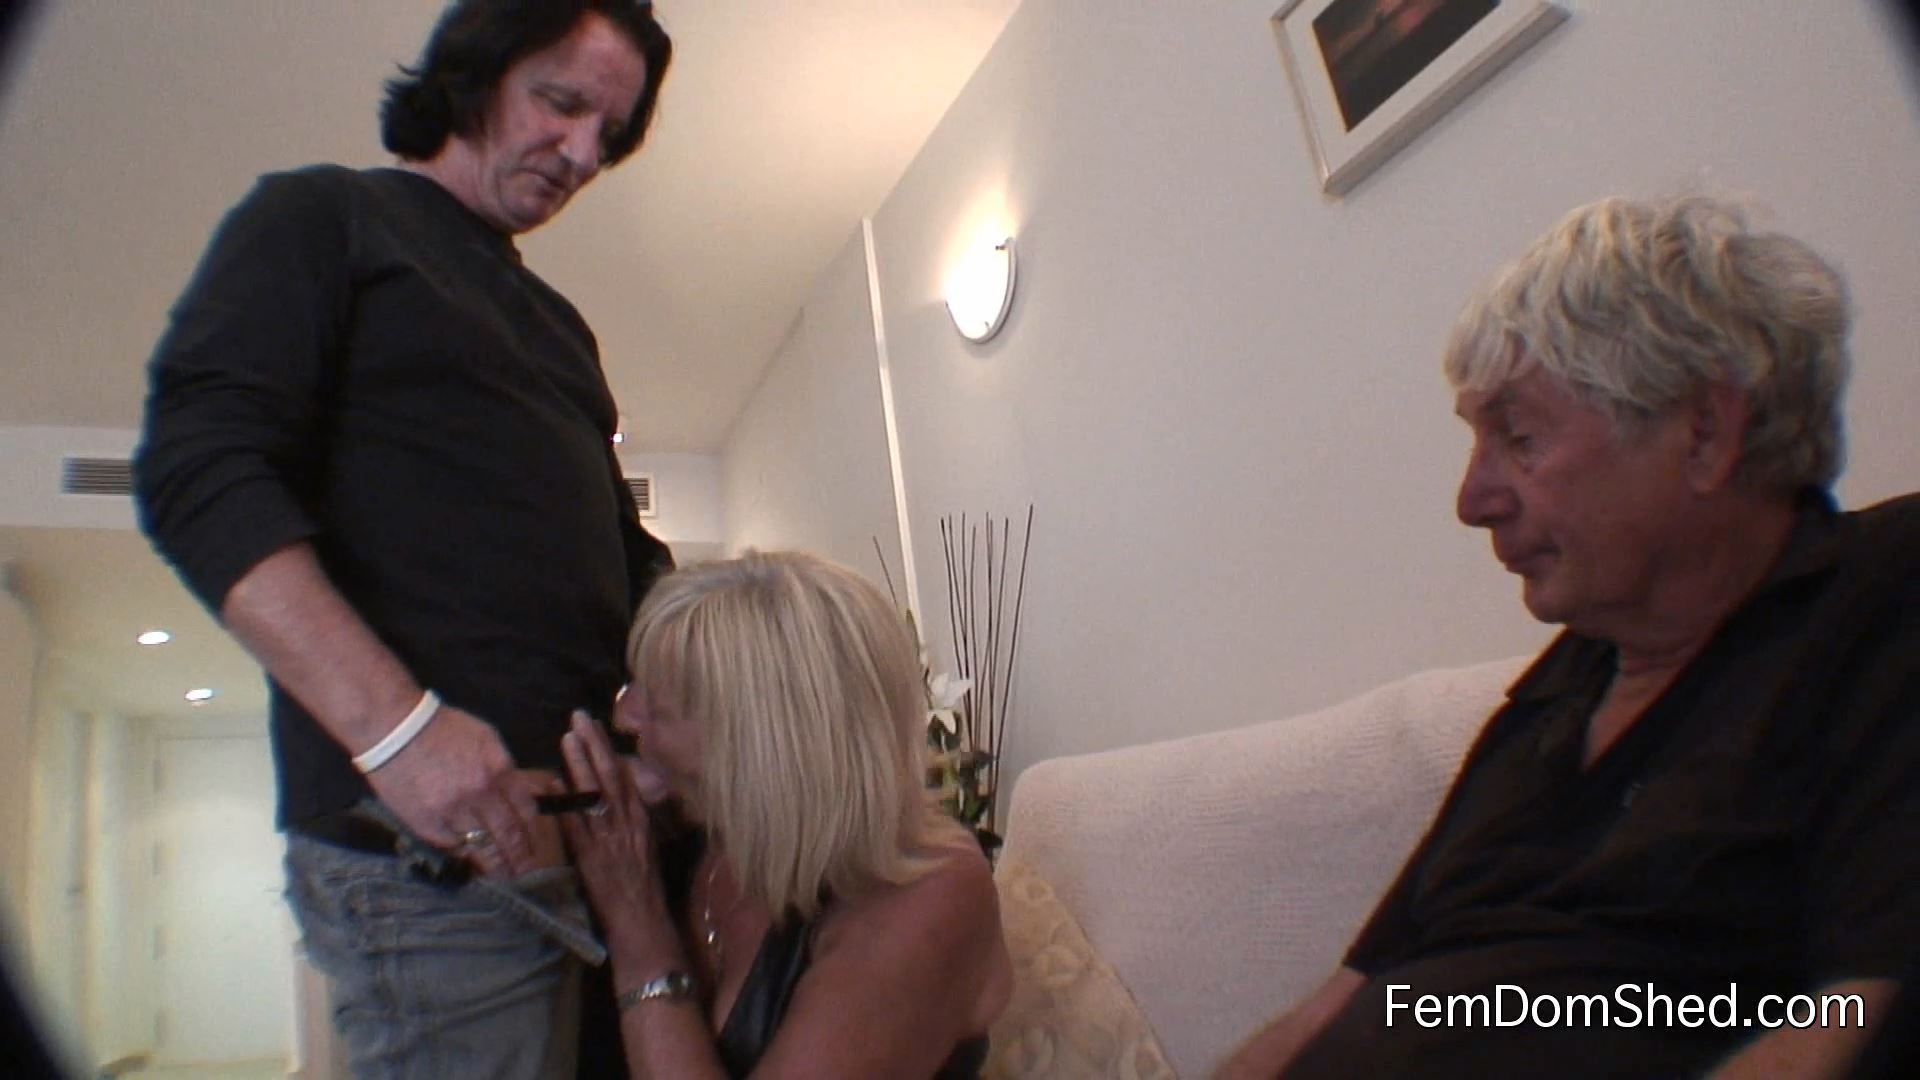 Cuckoldress Diane - Hubby Show Roger Your Pathetic Little Excuse For A Penis I Want Him To See Why I Need A Real Man - FEMDOMSHED - FULL HD/1080p/MP4